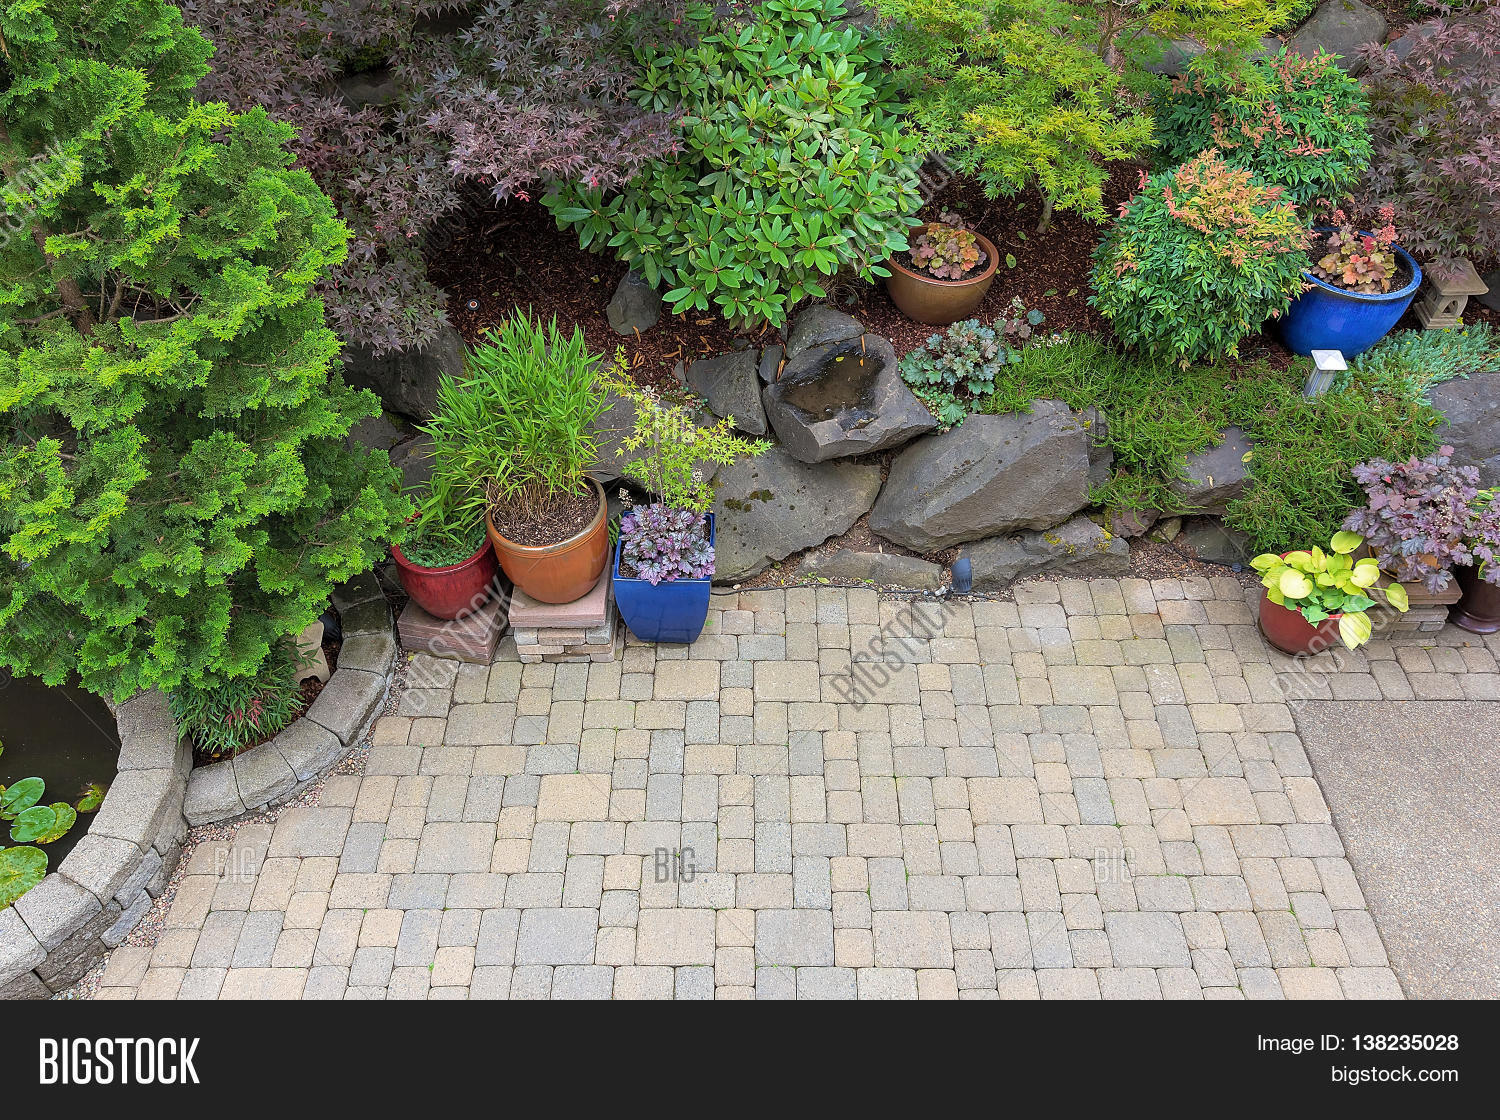 Backyard Garden Landscaping With Paver Bricks Patio Hardscape Trees Potted  Plants Shrubs Pond Rocks And Decor